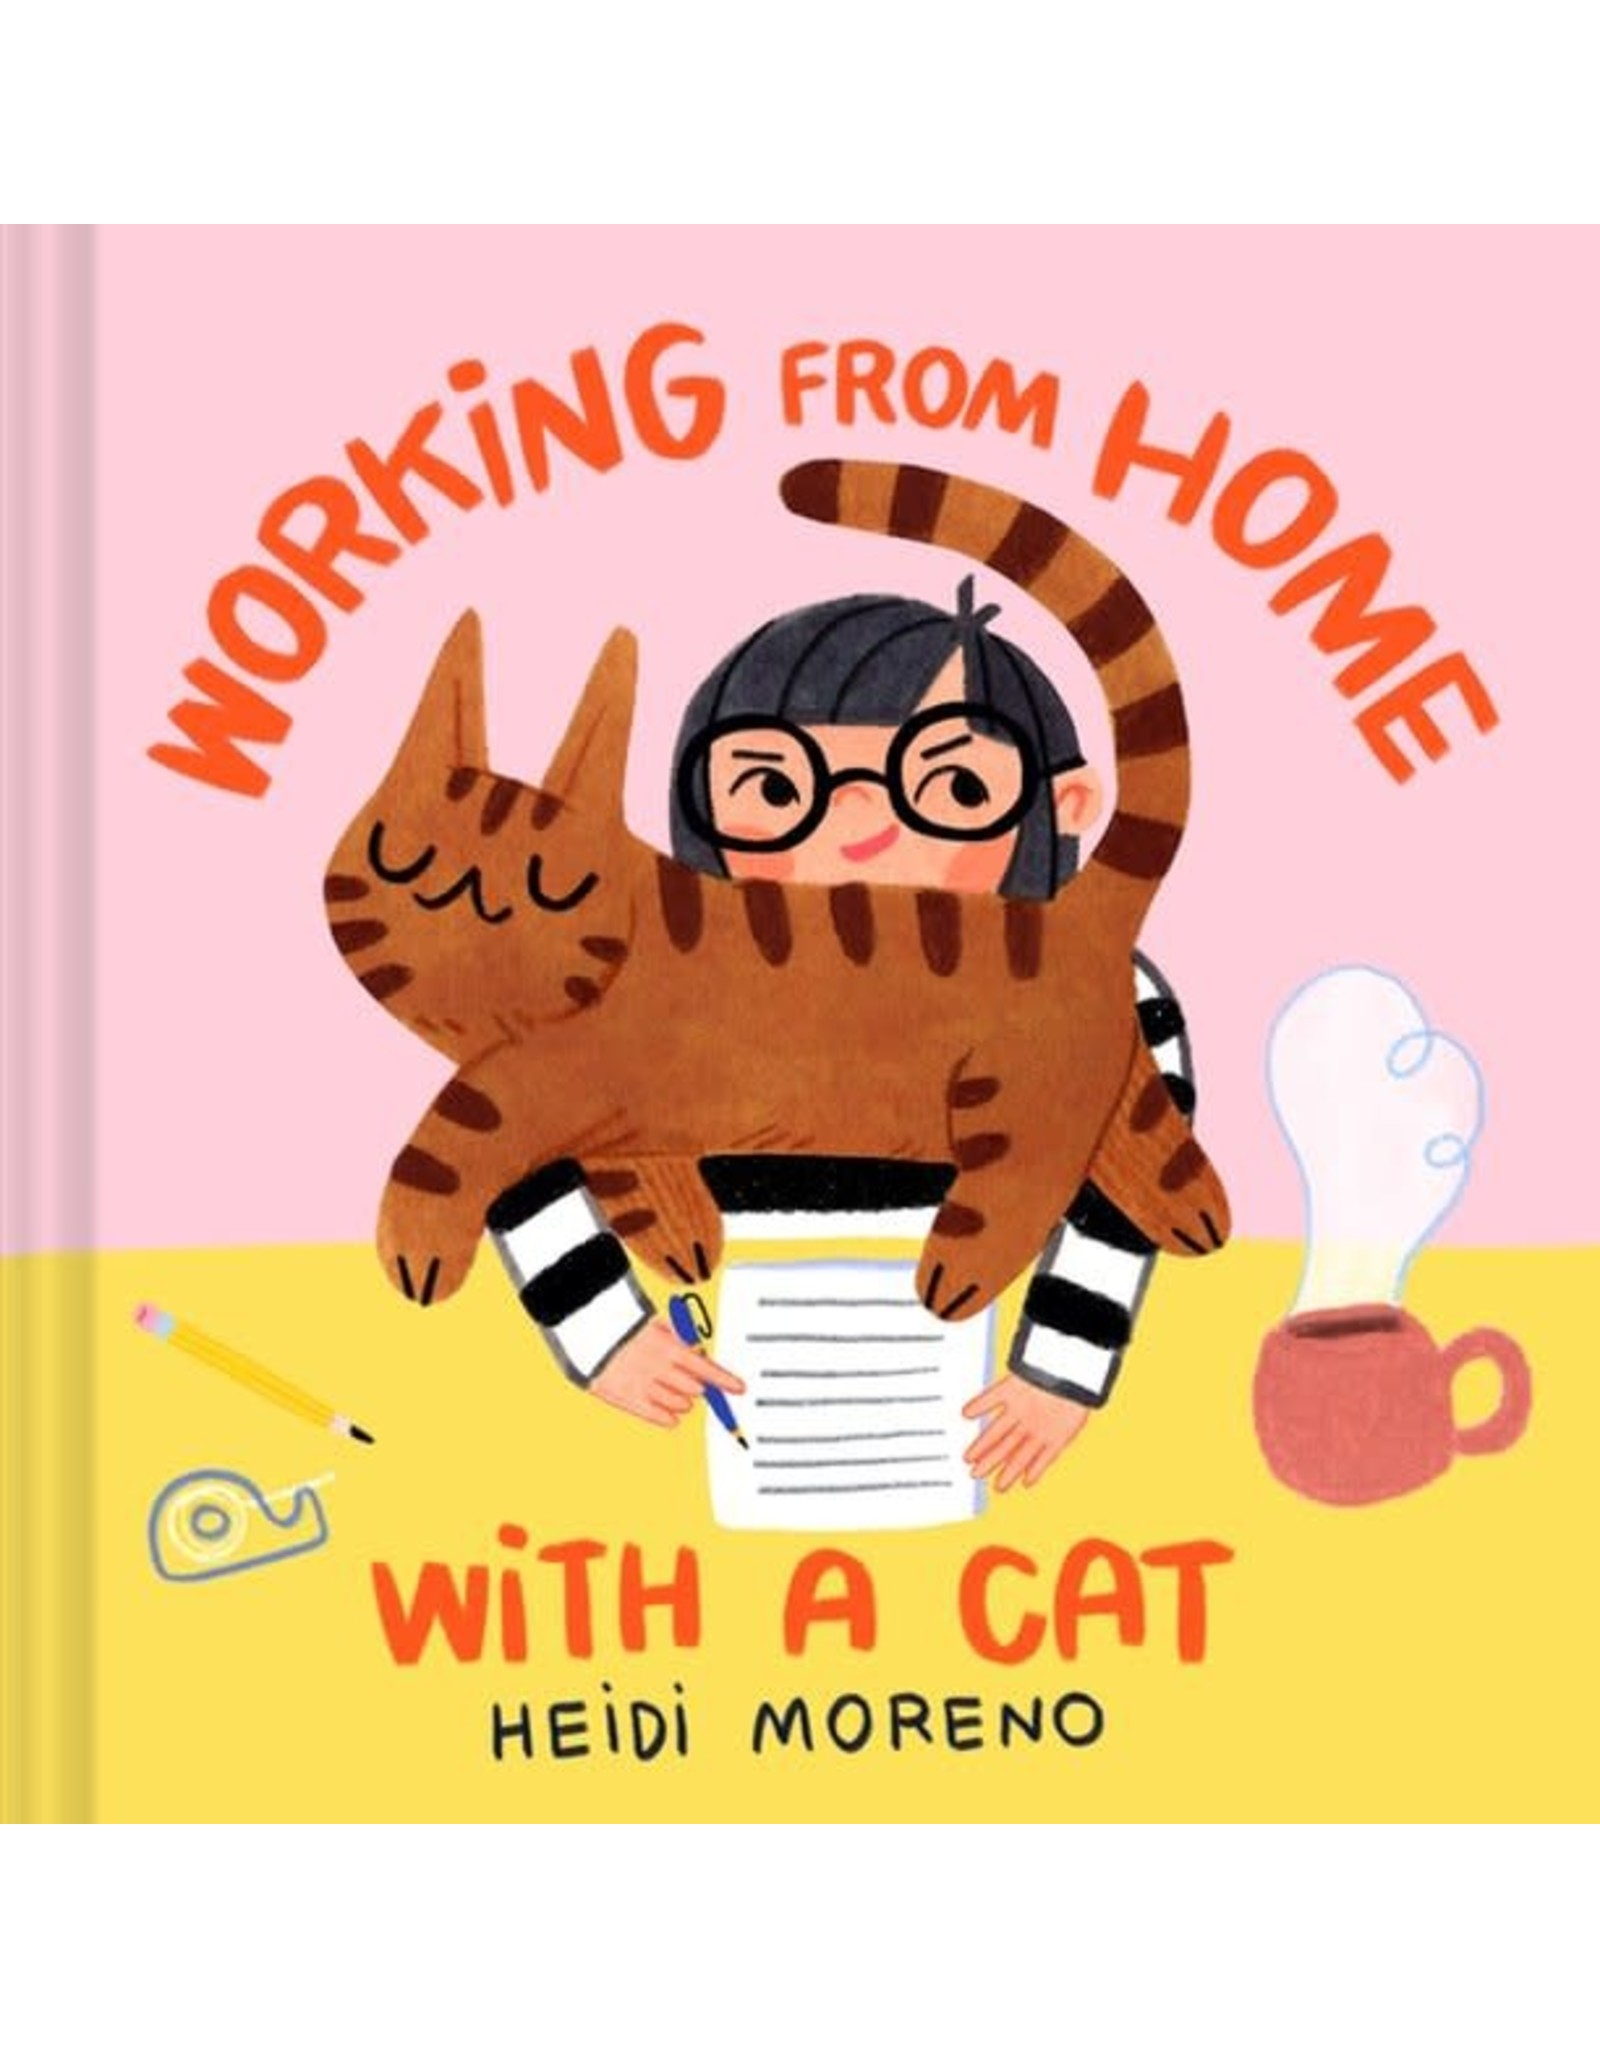 Chronicle Books Working from Home with a Cat